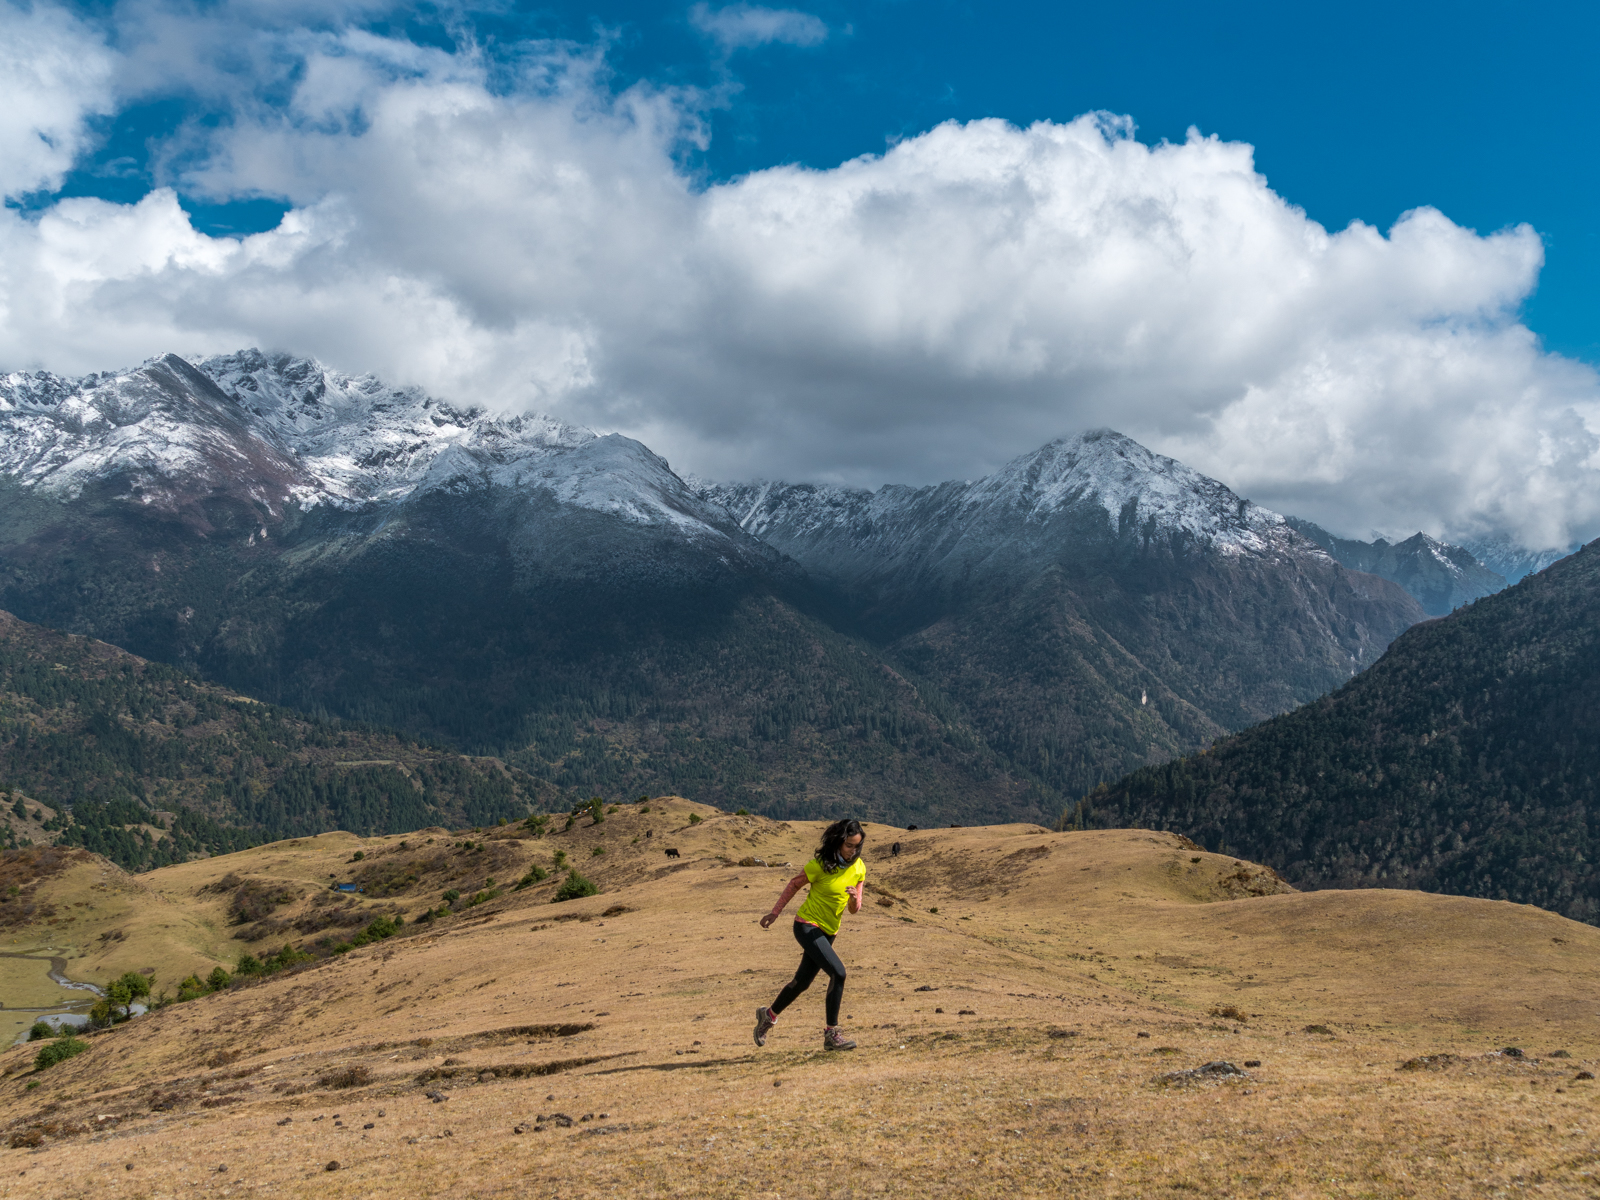 Alex running at high altitudes in the Himalaya Mountains of Bhutan